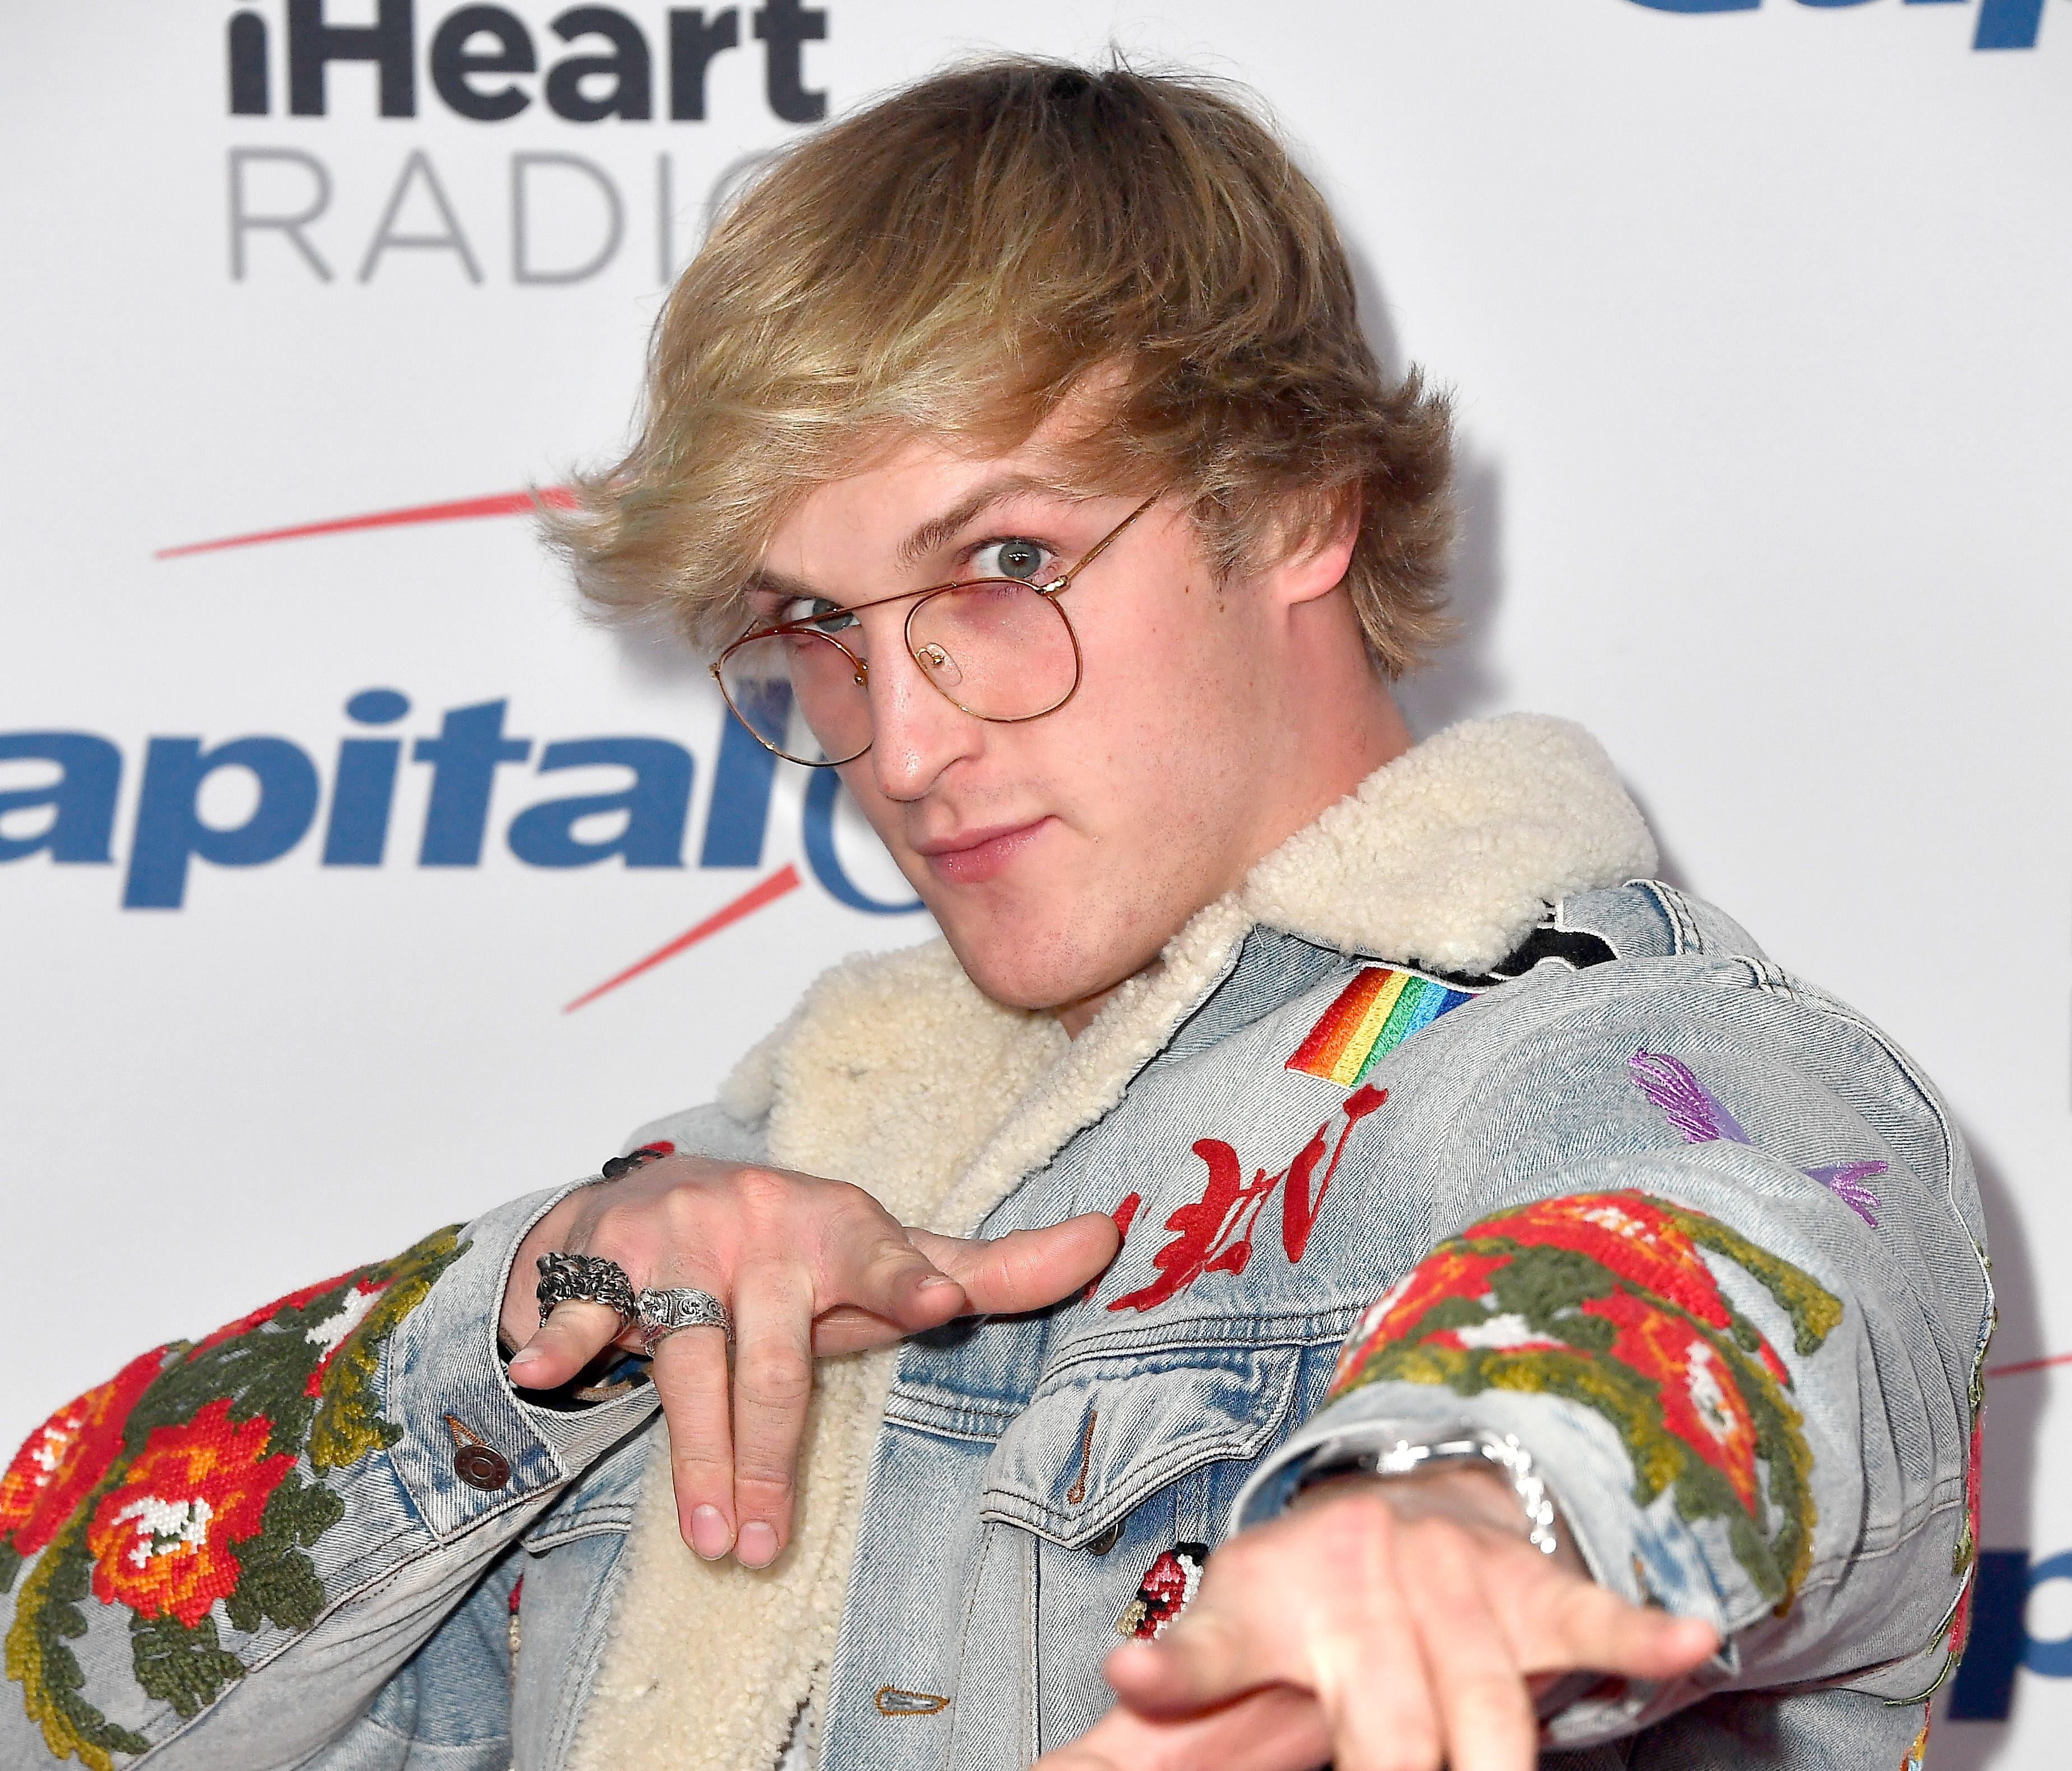 Logan Paul attends 102.7 KIIS FM's Jingle Ball 2017 presented by Capital One at The Forum on December 1, 2017 in Inglewood, California.